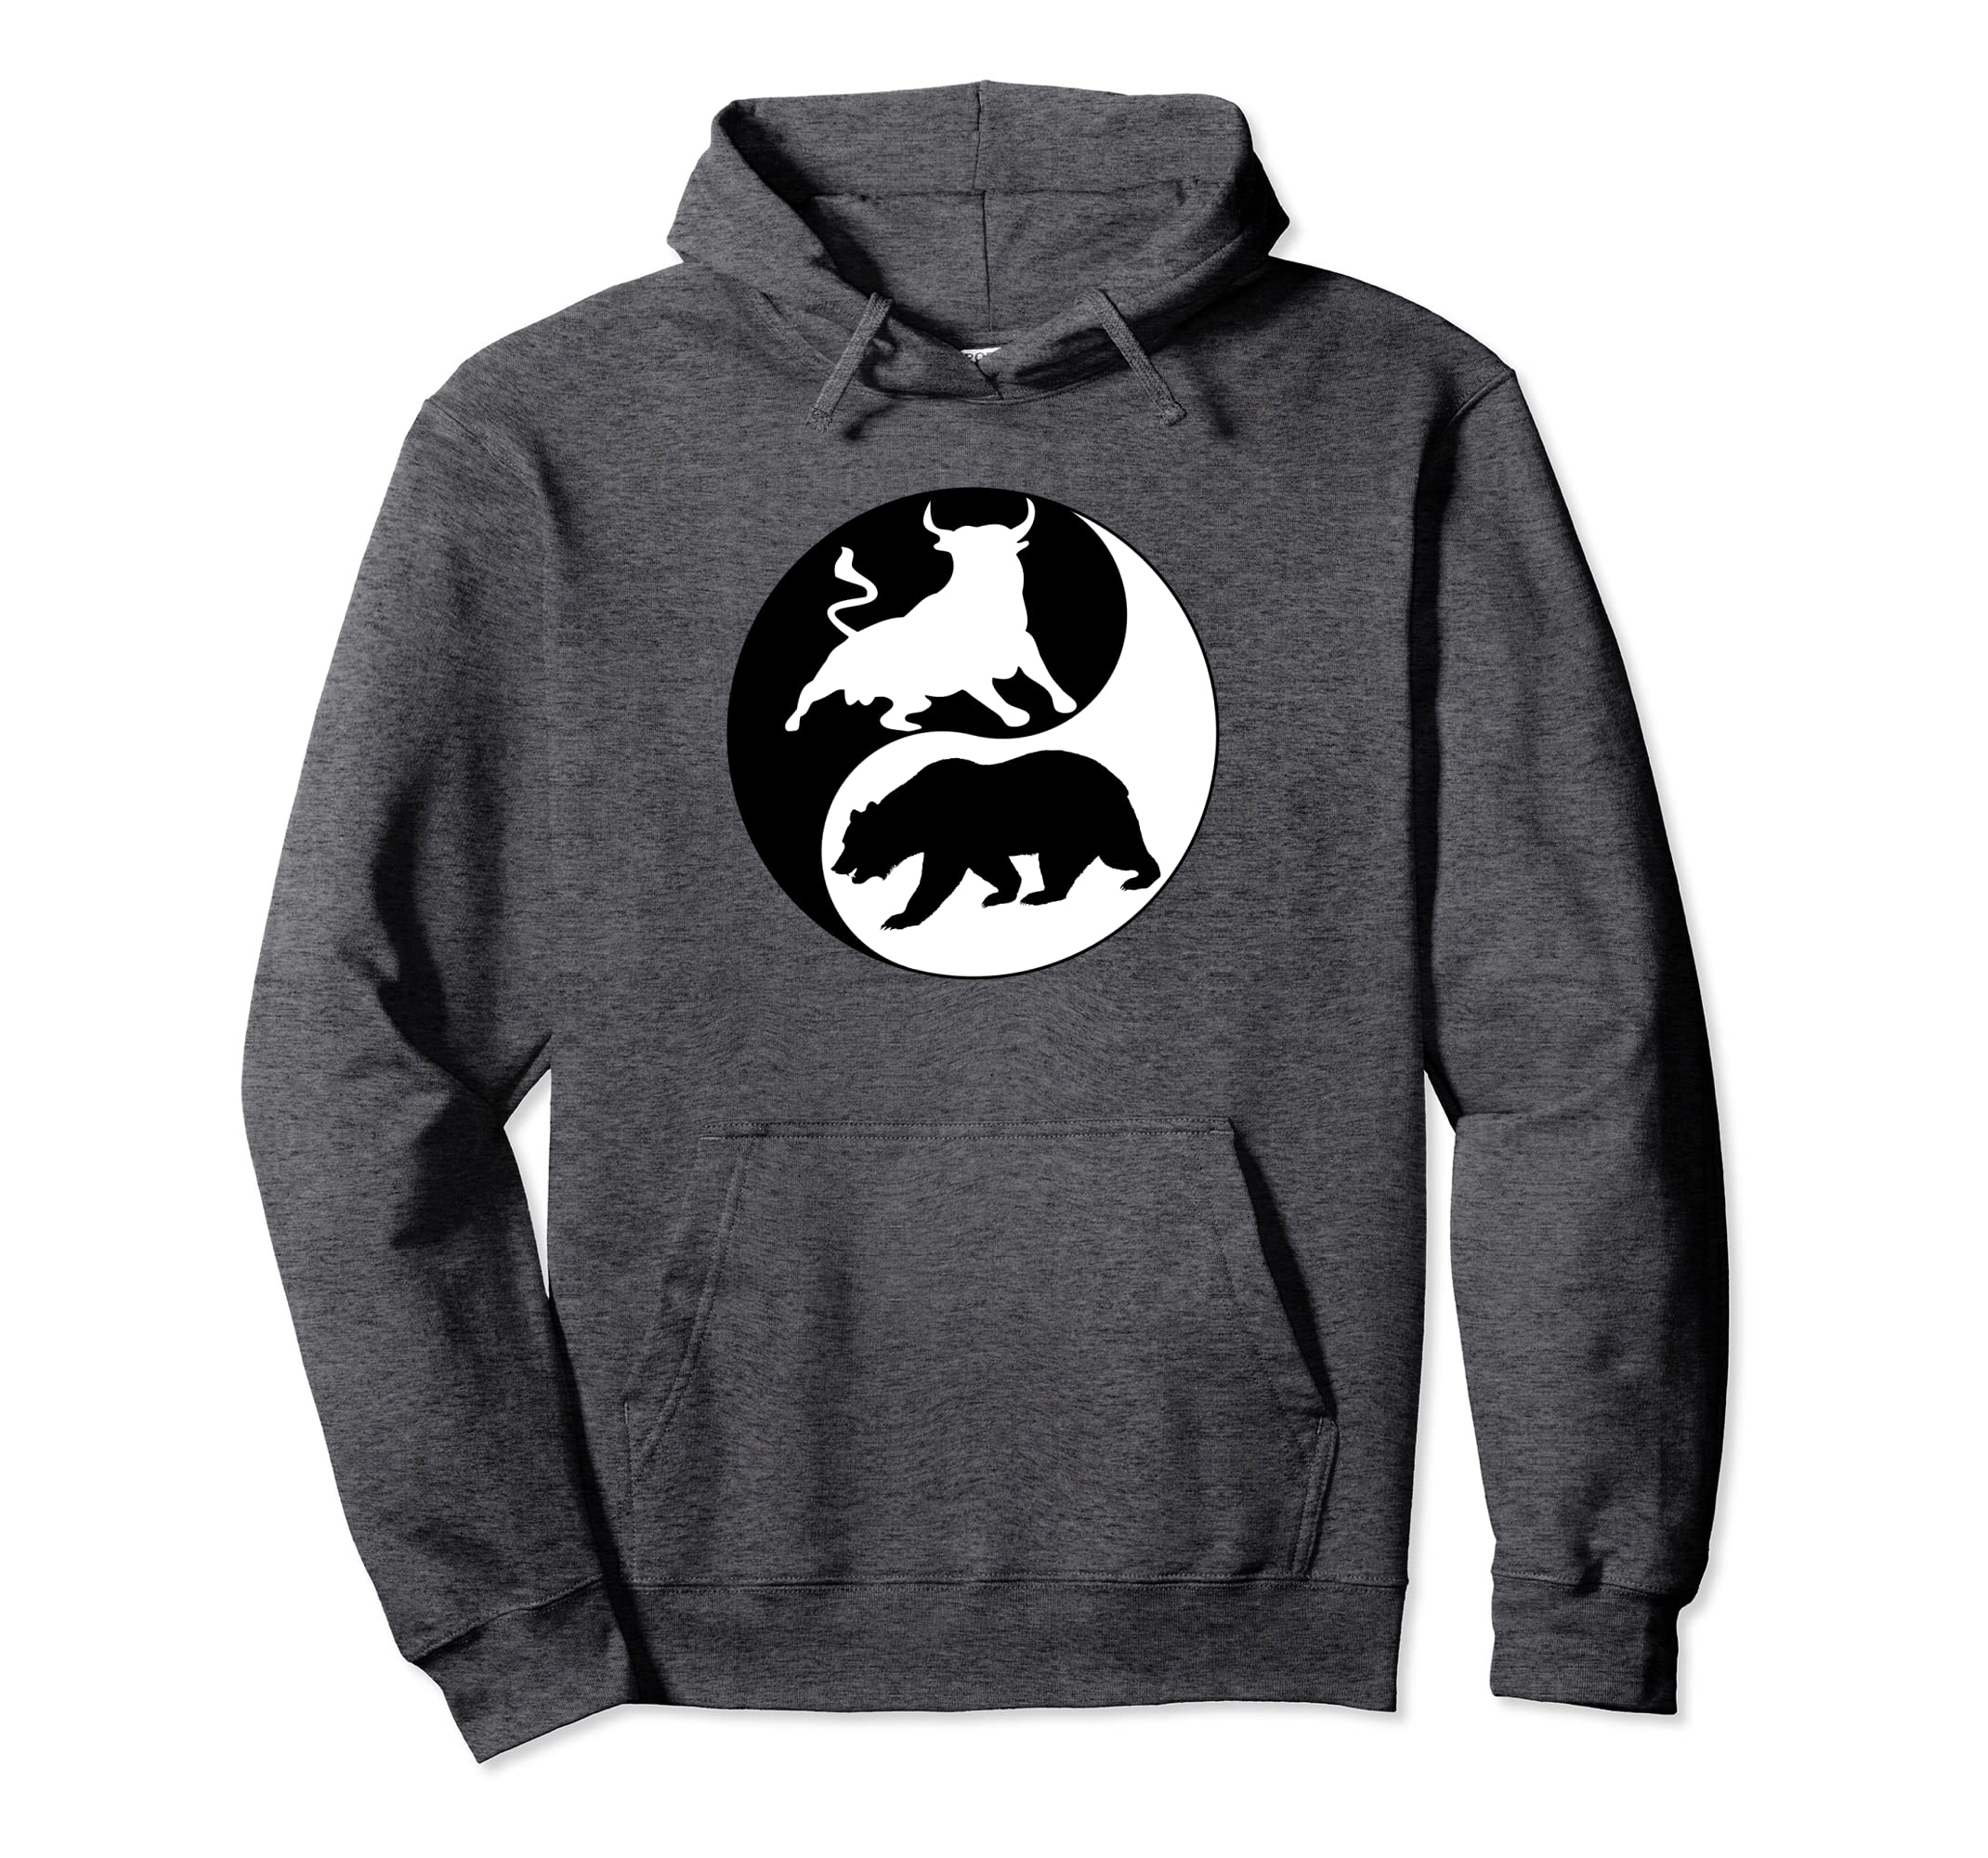 e12f1da4 Amazon.com: Trading gift hoodie for men and women Stock market traders:  Clothing